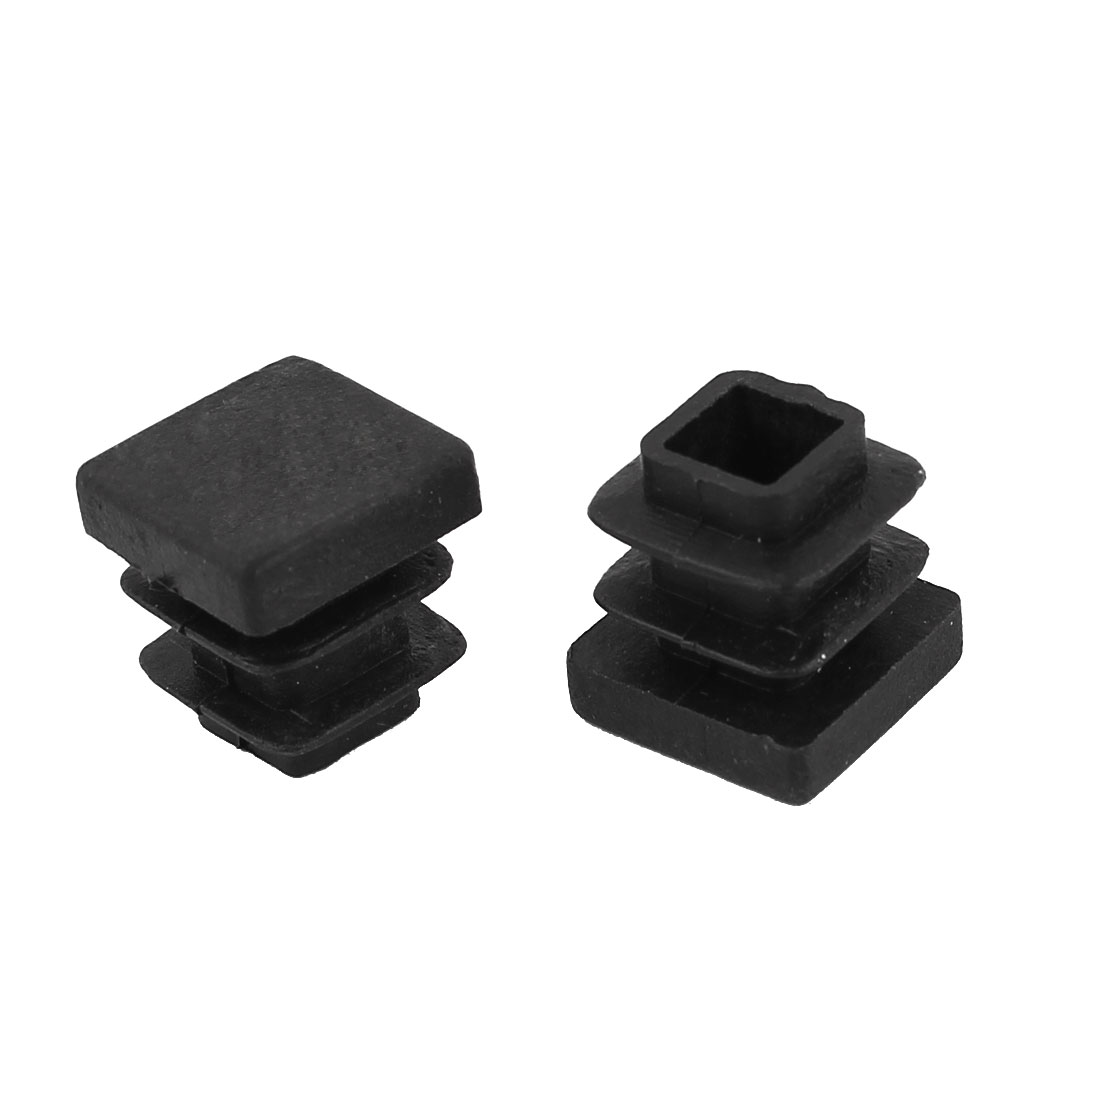 2 Pieces Black Plastic Square Blanking End Caps Tubing Tube Inserts 13mm x 13mm